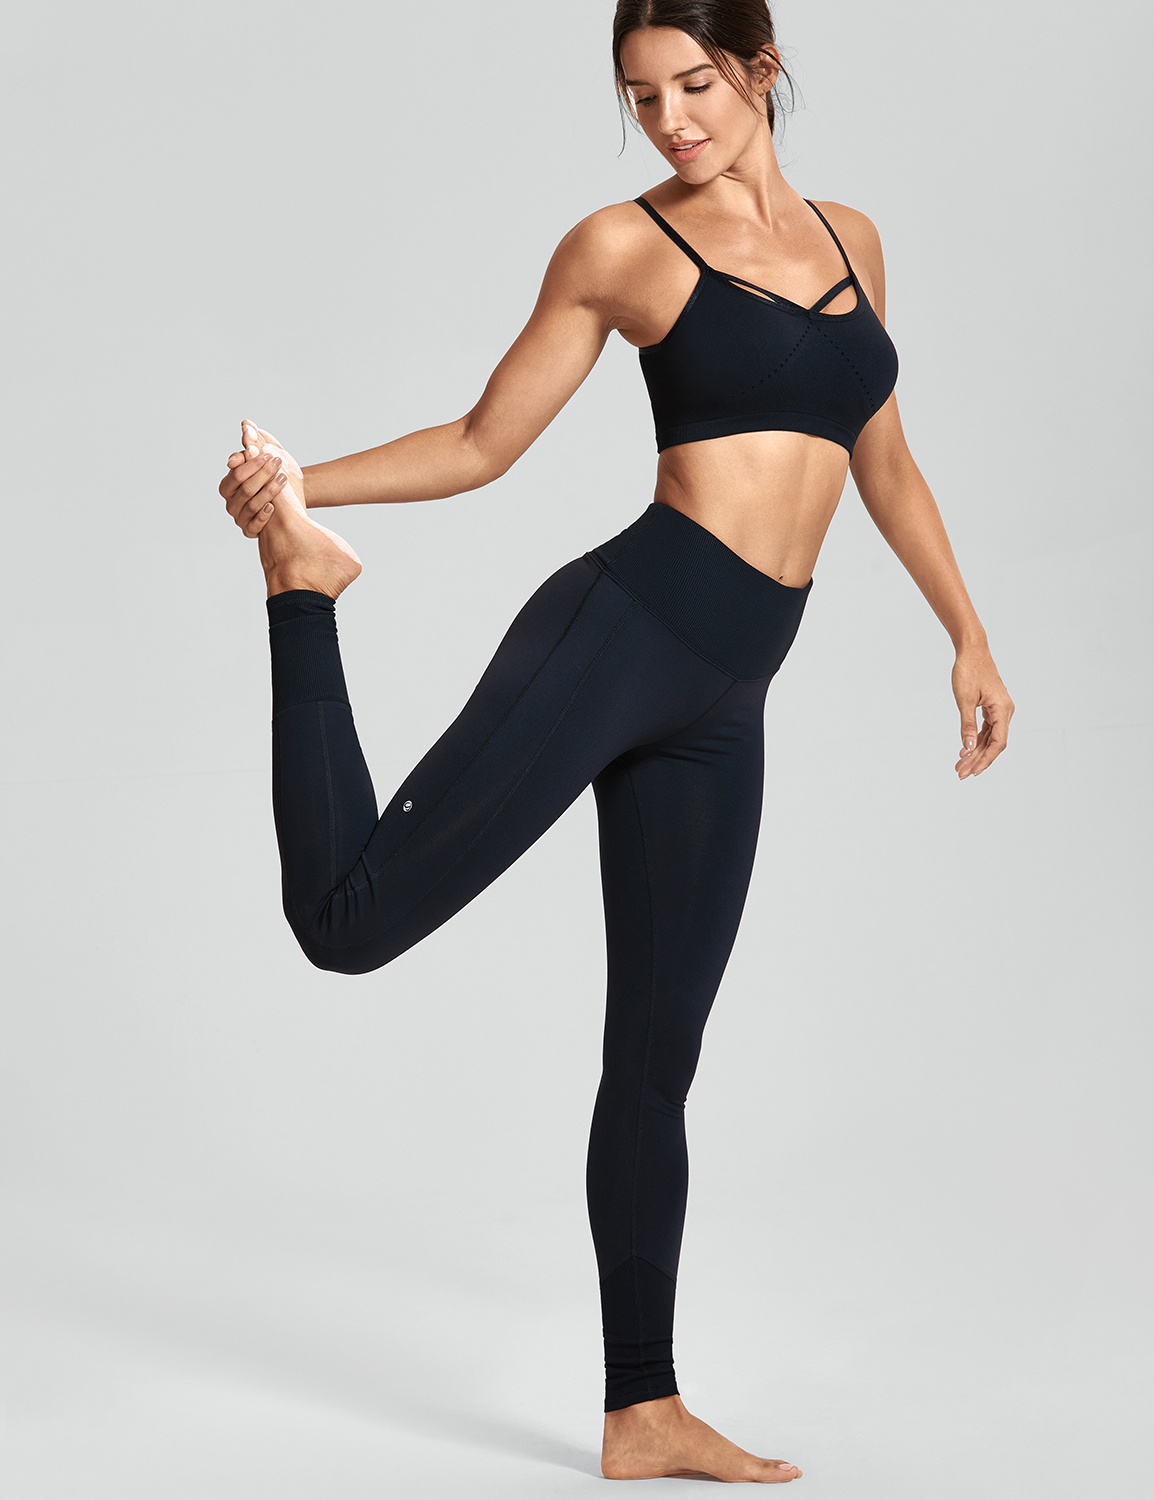 Damen hoher Taille verdicken für Yoga Fitness Stretchhosen Leggings